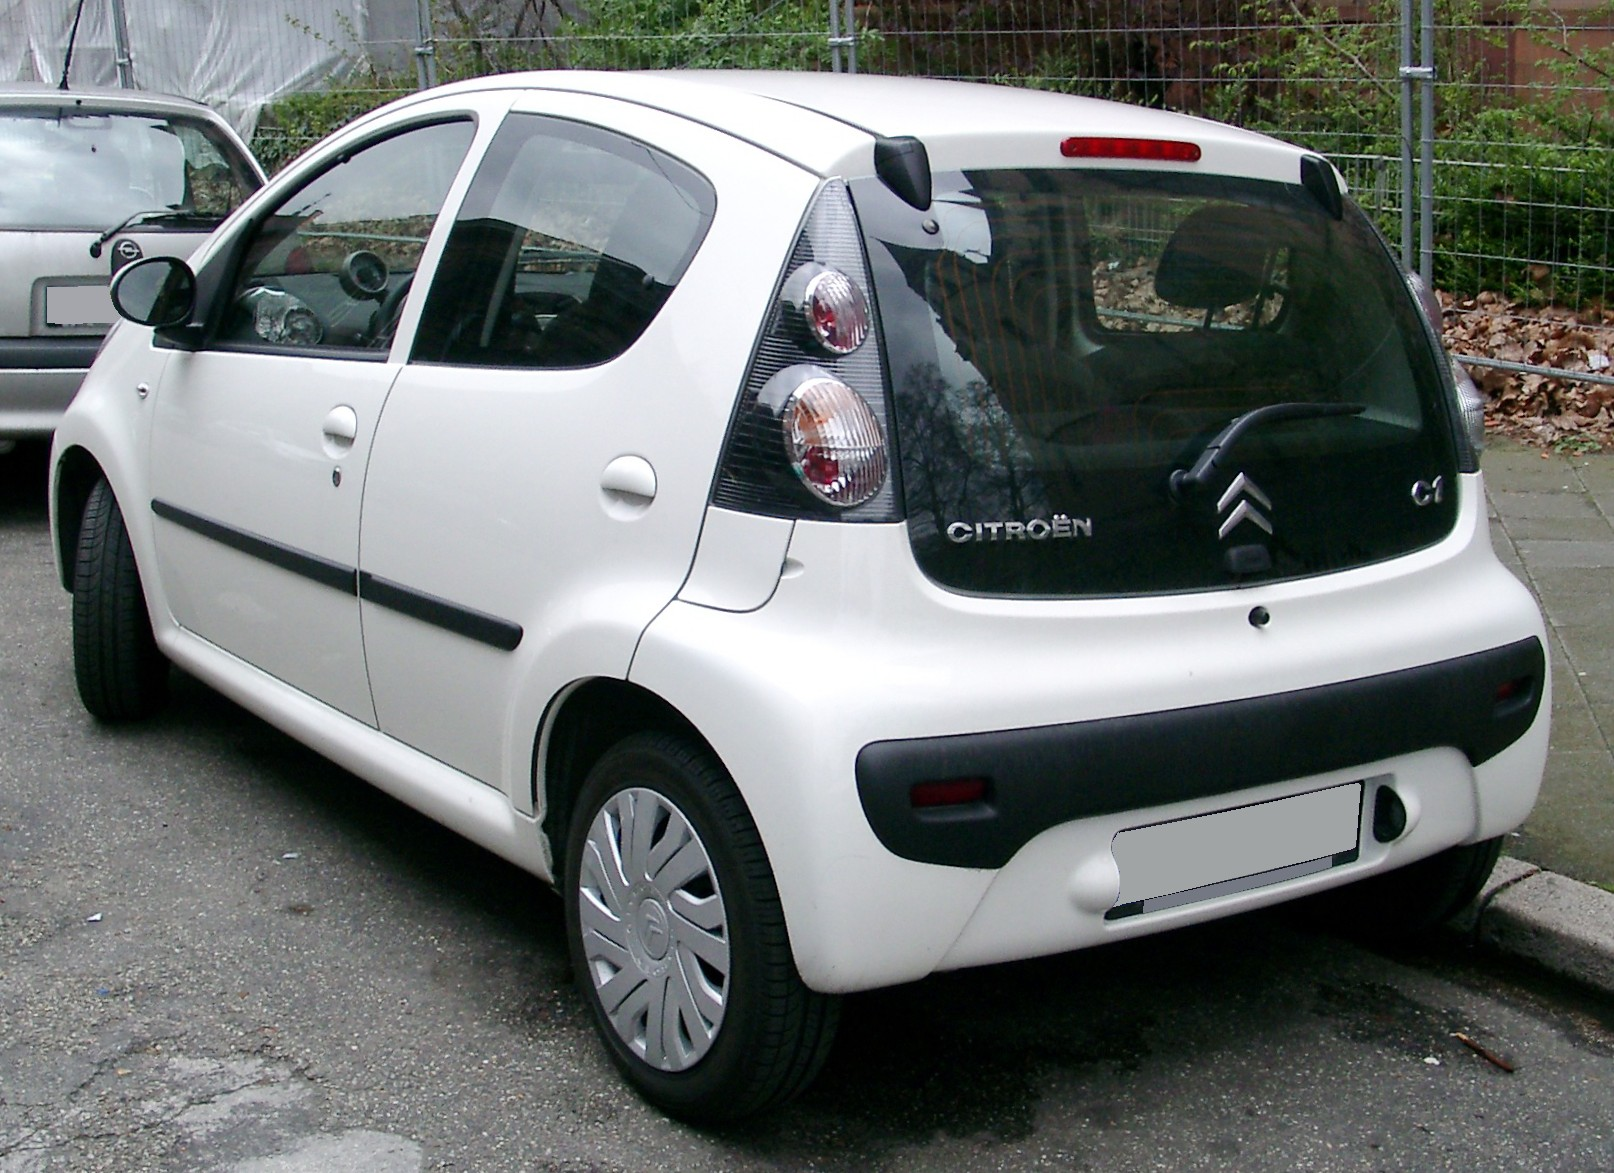 File:Citroen C1 rear 20080417.jpg - Wikipedia